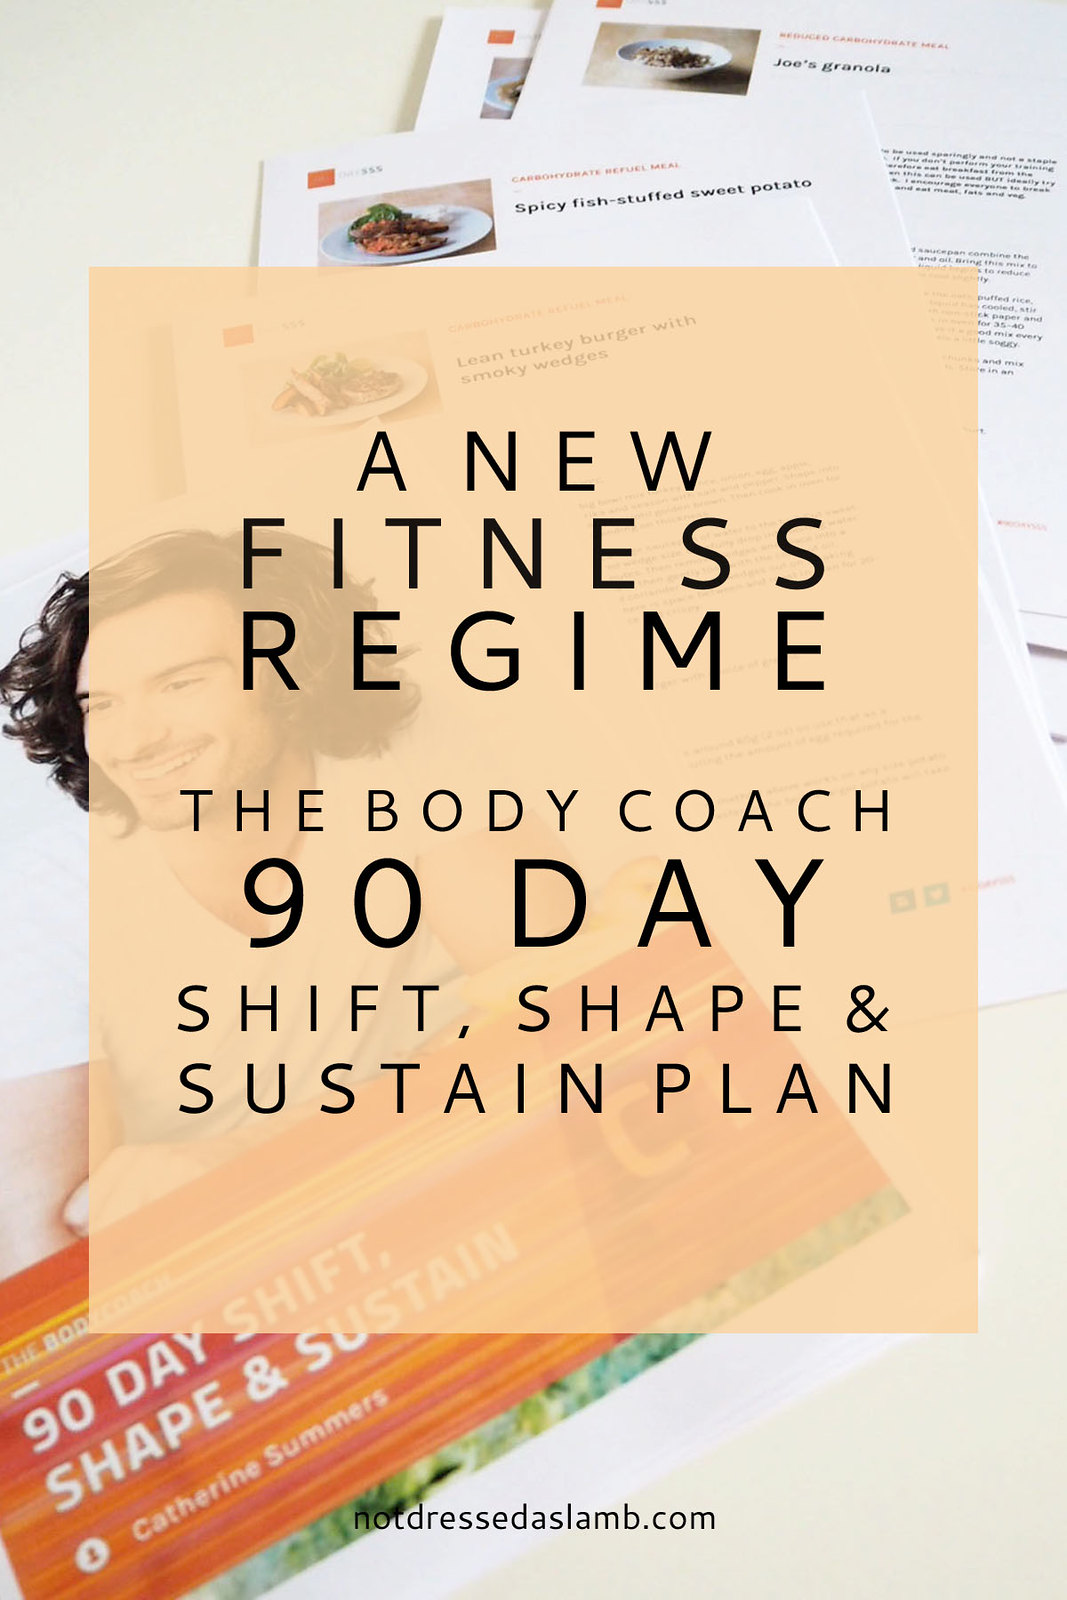 A New Fitness Regime | The Body Coach 90 Day Shift, Shape & Sustain Plan #notlambFIT |Not Dressed As Lamb